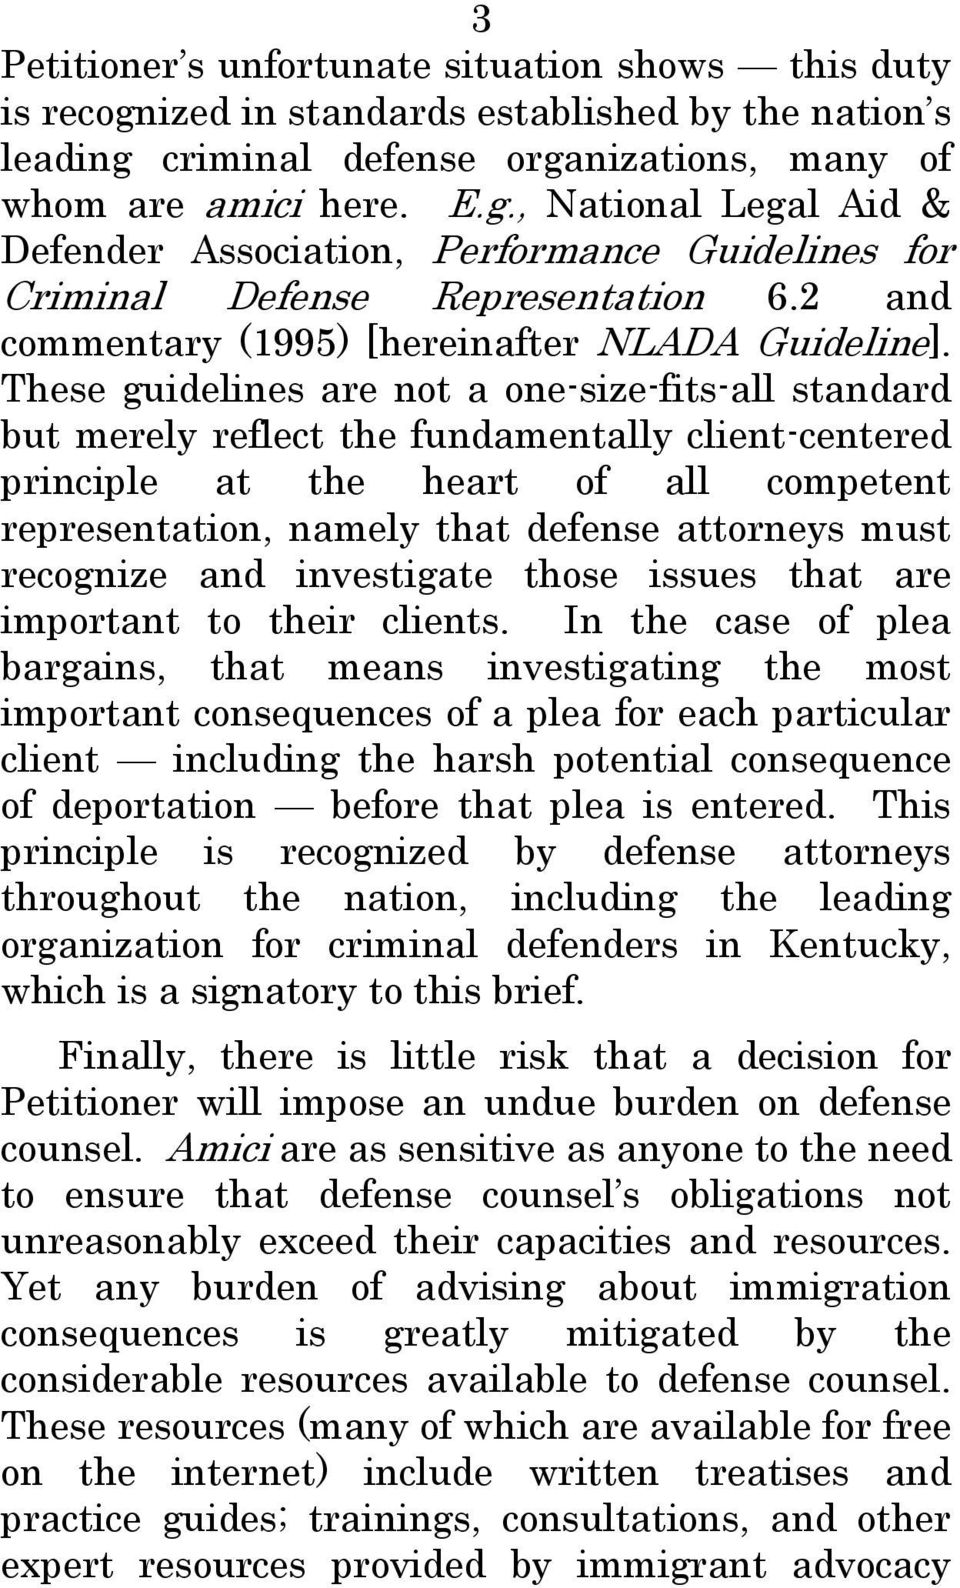 These guidelines are not a one-size-fits-all standard but merely reflect the fundamentally client-centered principle at the heart of all competent representation, namely that defense attorneys must